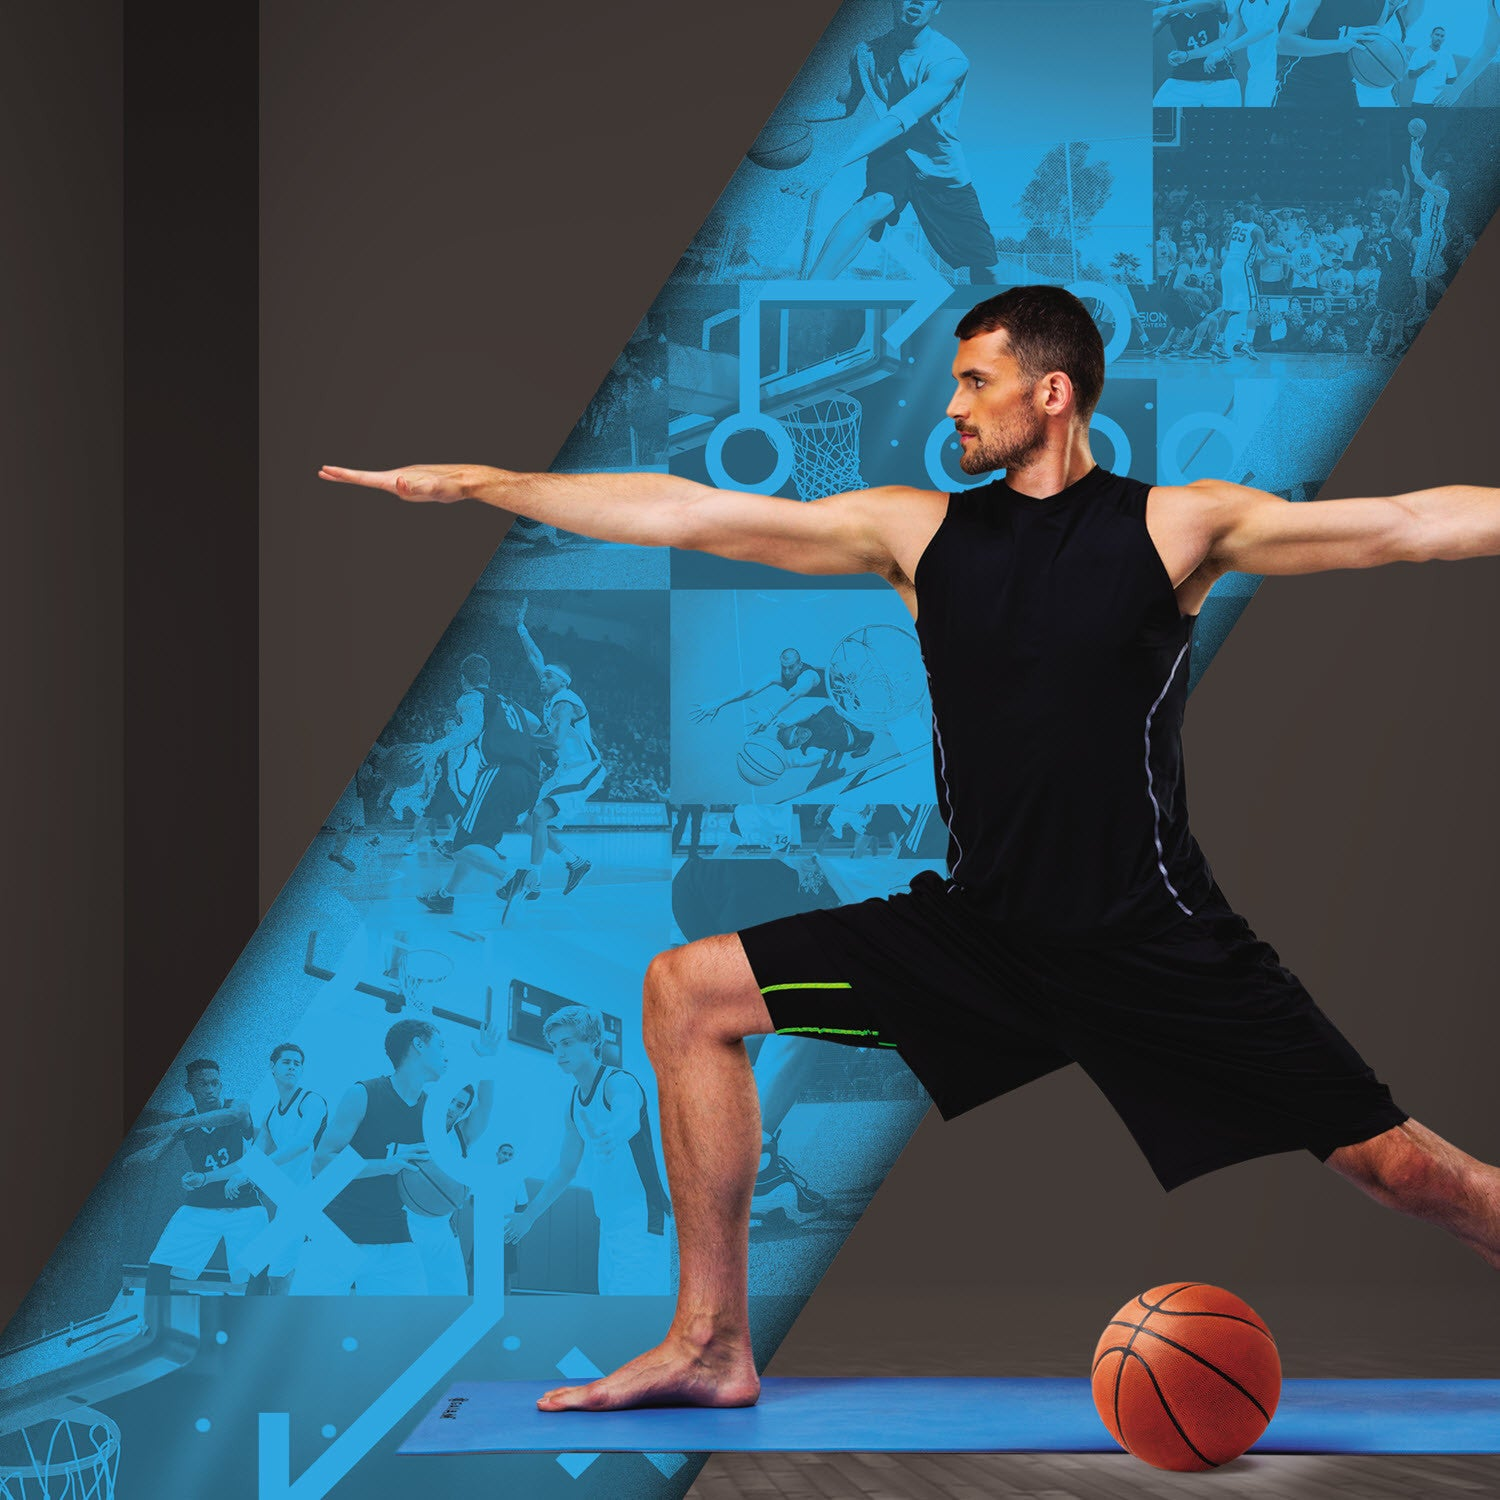 With the Gaiam Athletic Yoga: Yoga For Flexibility DVD With Kevin Love, you can enjoy your workout from home, at your own pace - without having to worry about gym hours, babysitters, anything! This fitness DVD focuses on lengthening the body and increase mobility & agility with NBA All-Star, Kevin Love.